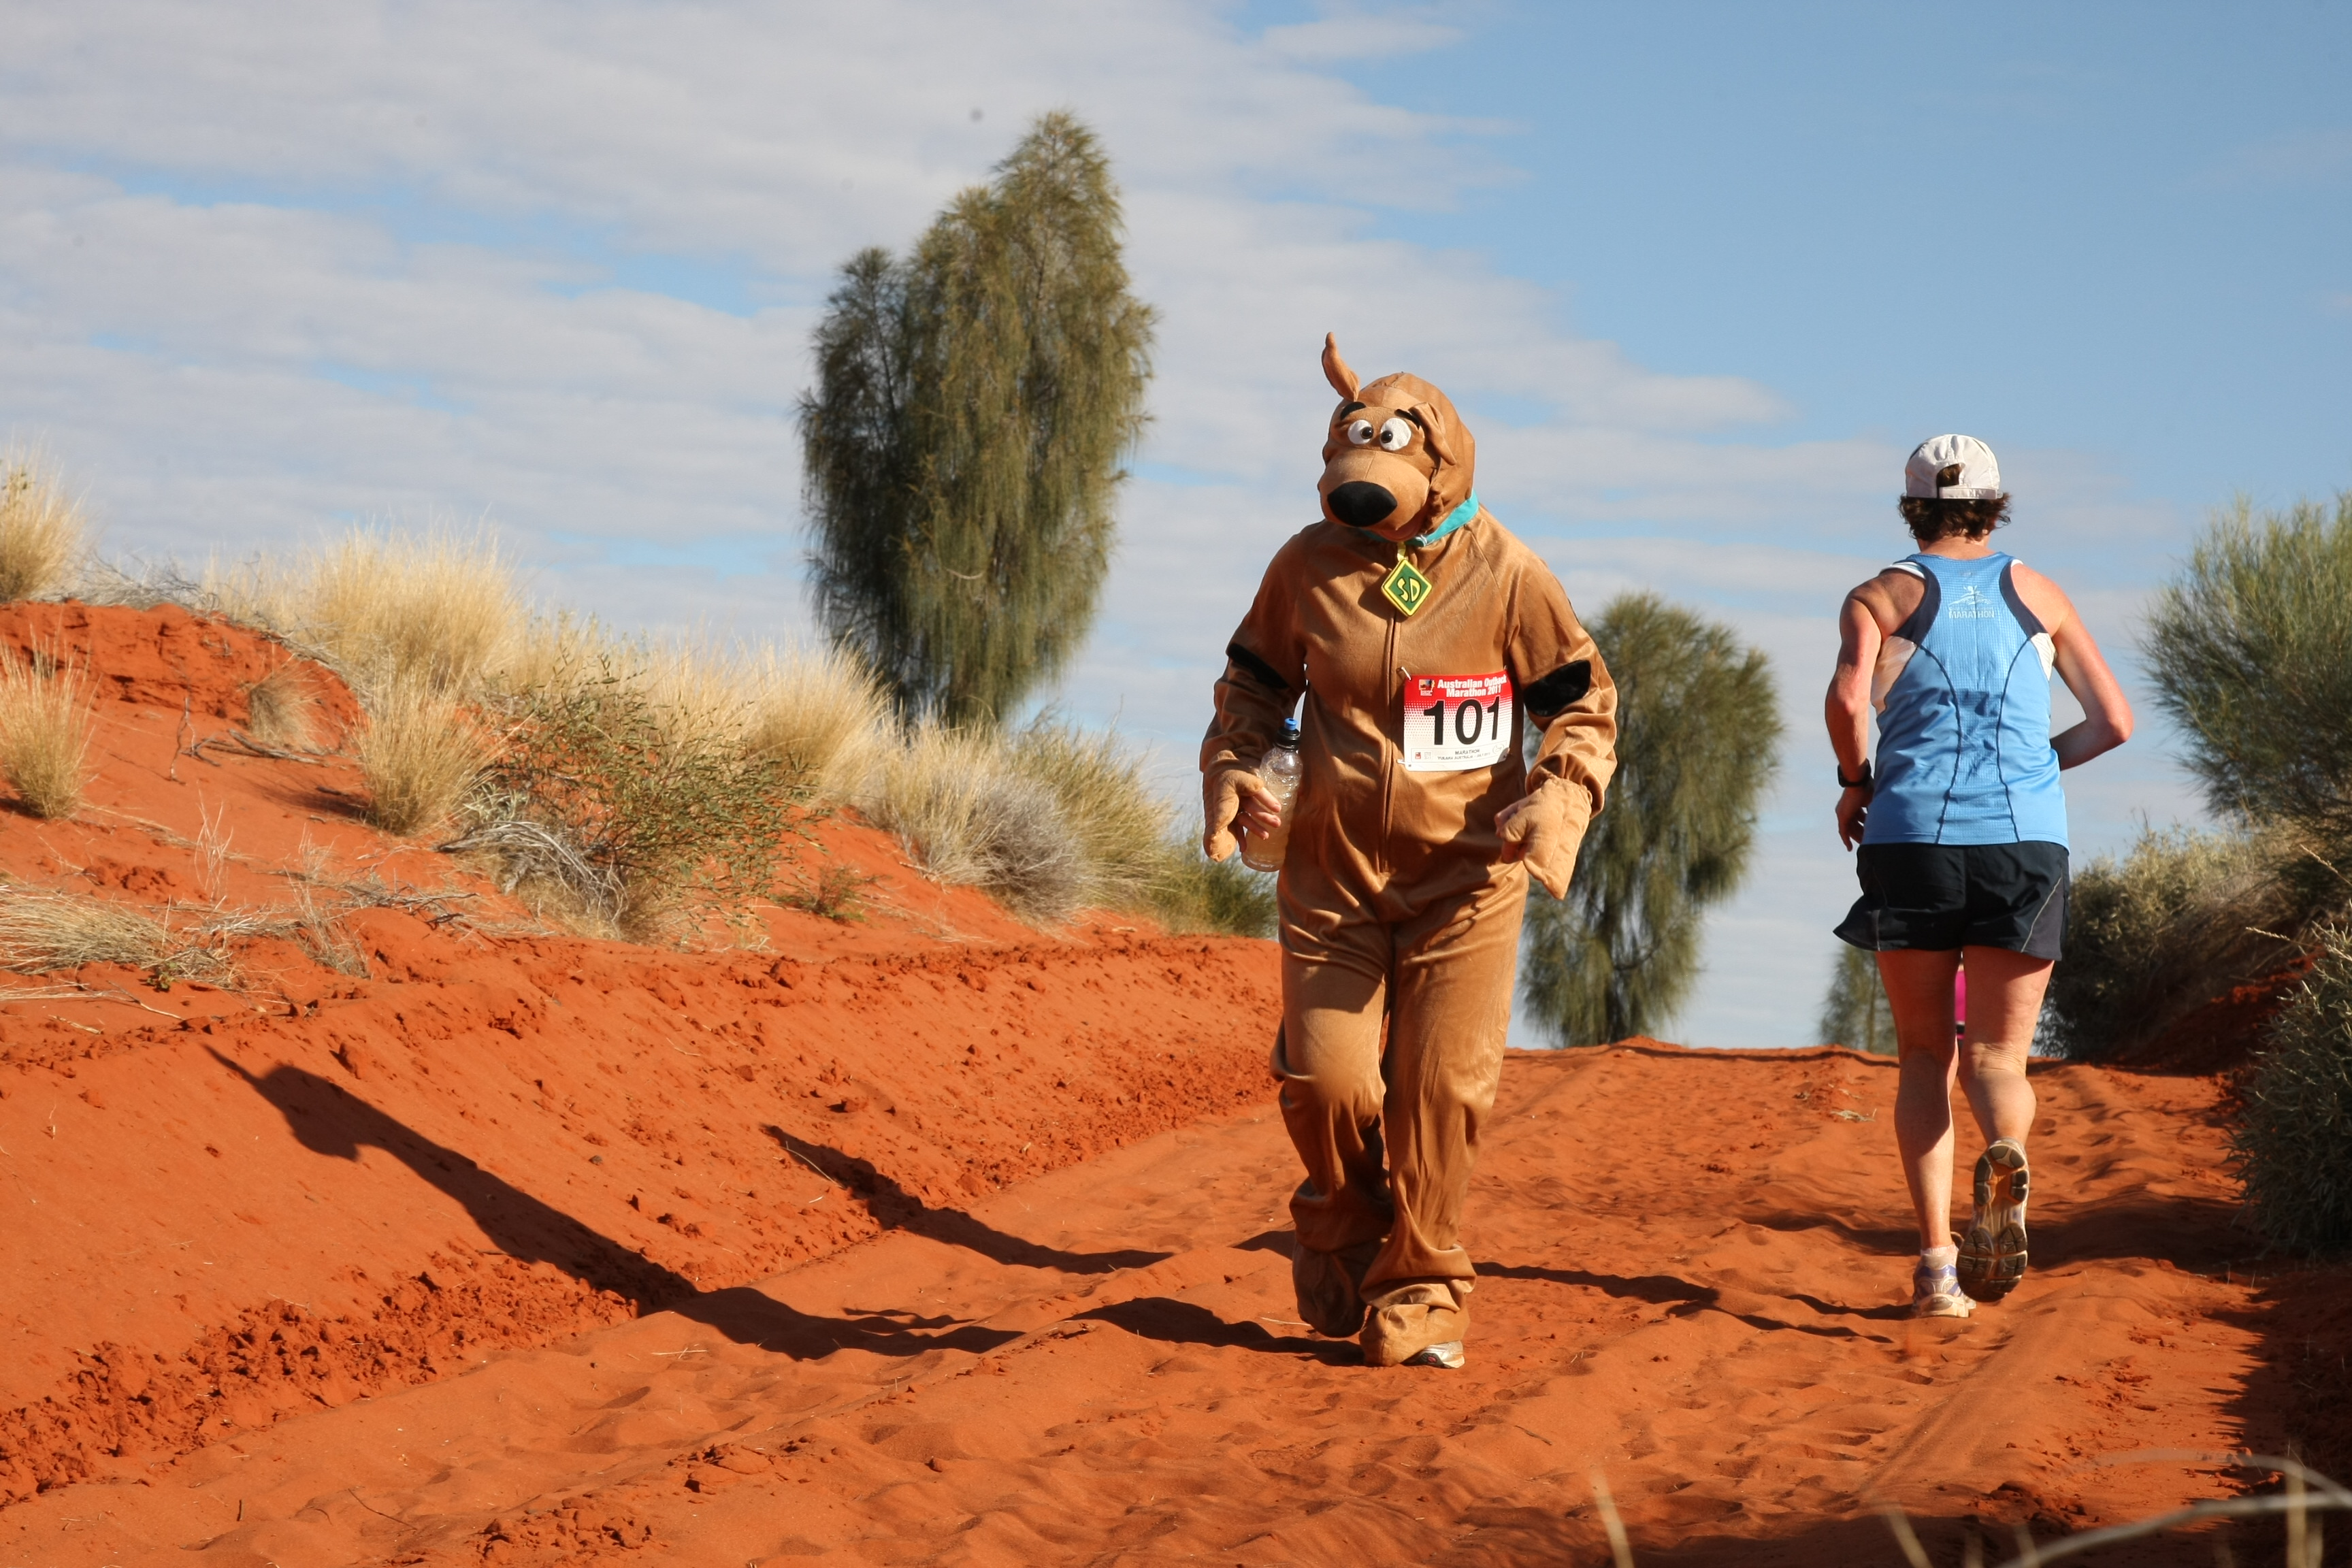 A person runs in the Australia Outback Marathon dressed as Scooby Doo